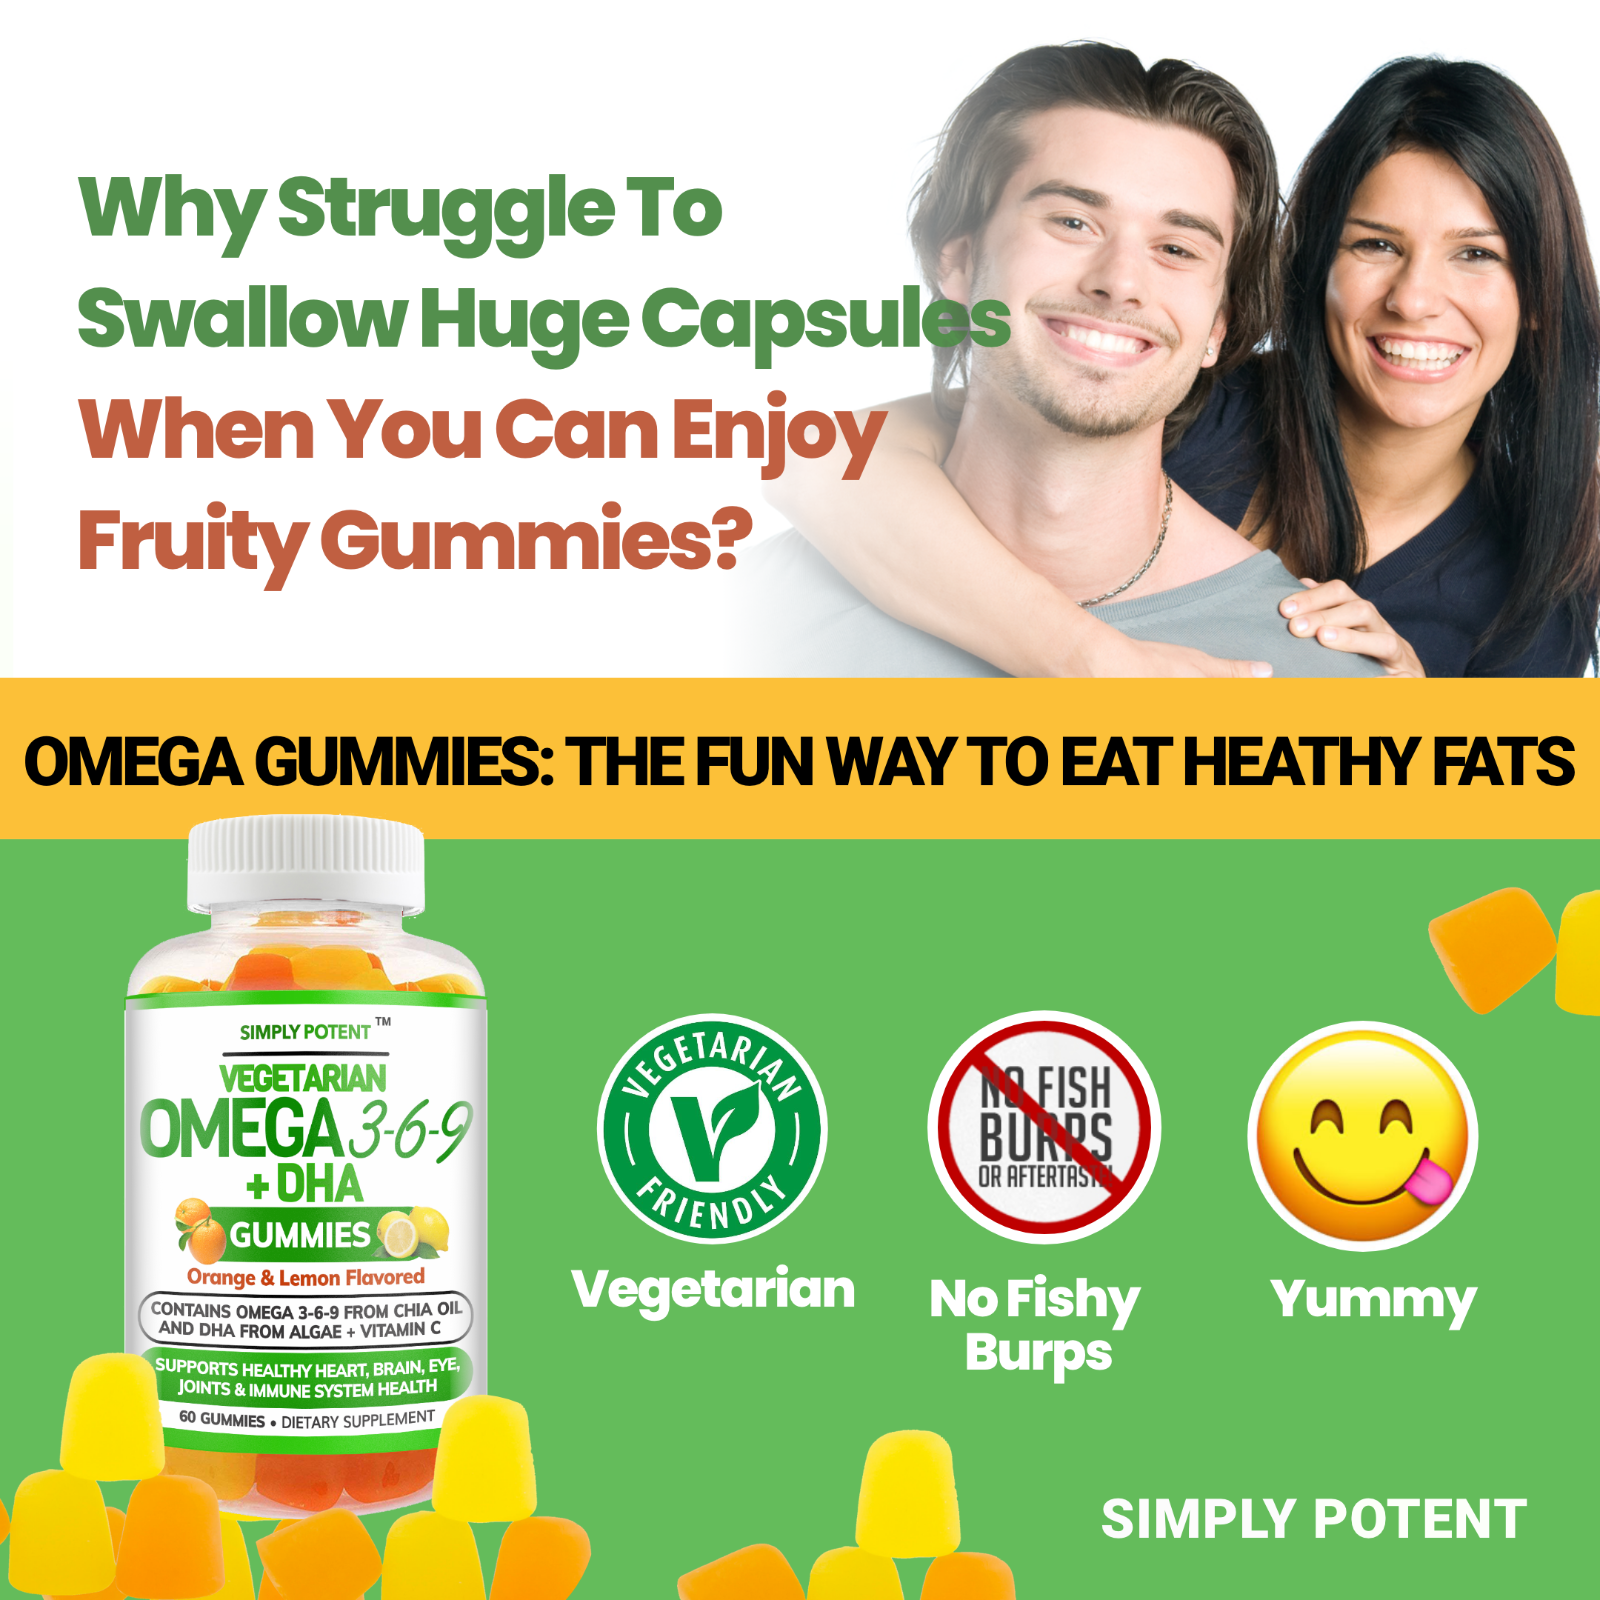 Omega 3 6 9 + DHA + Vitamin C Fish-Free Gummies for Brain, Heart, Joint Support 3